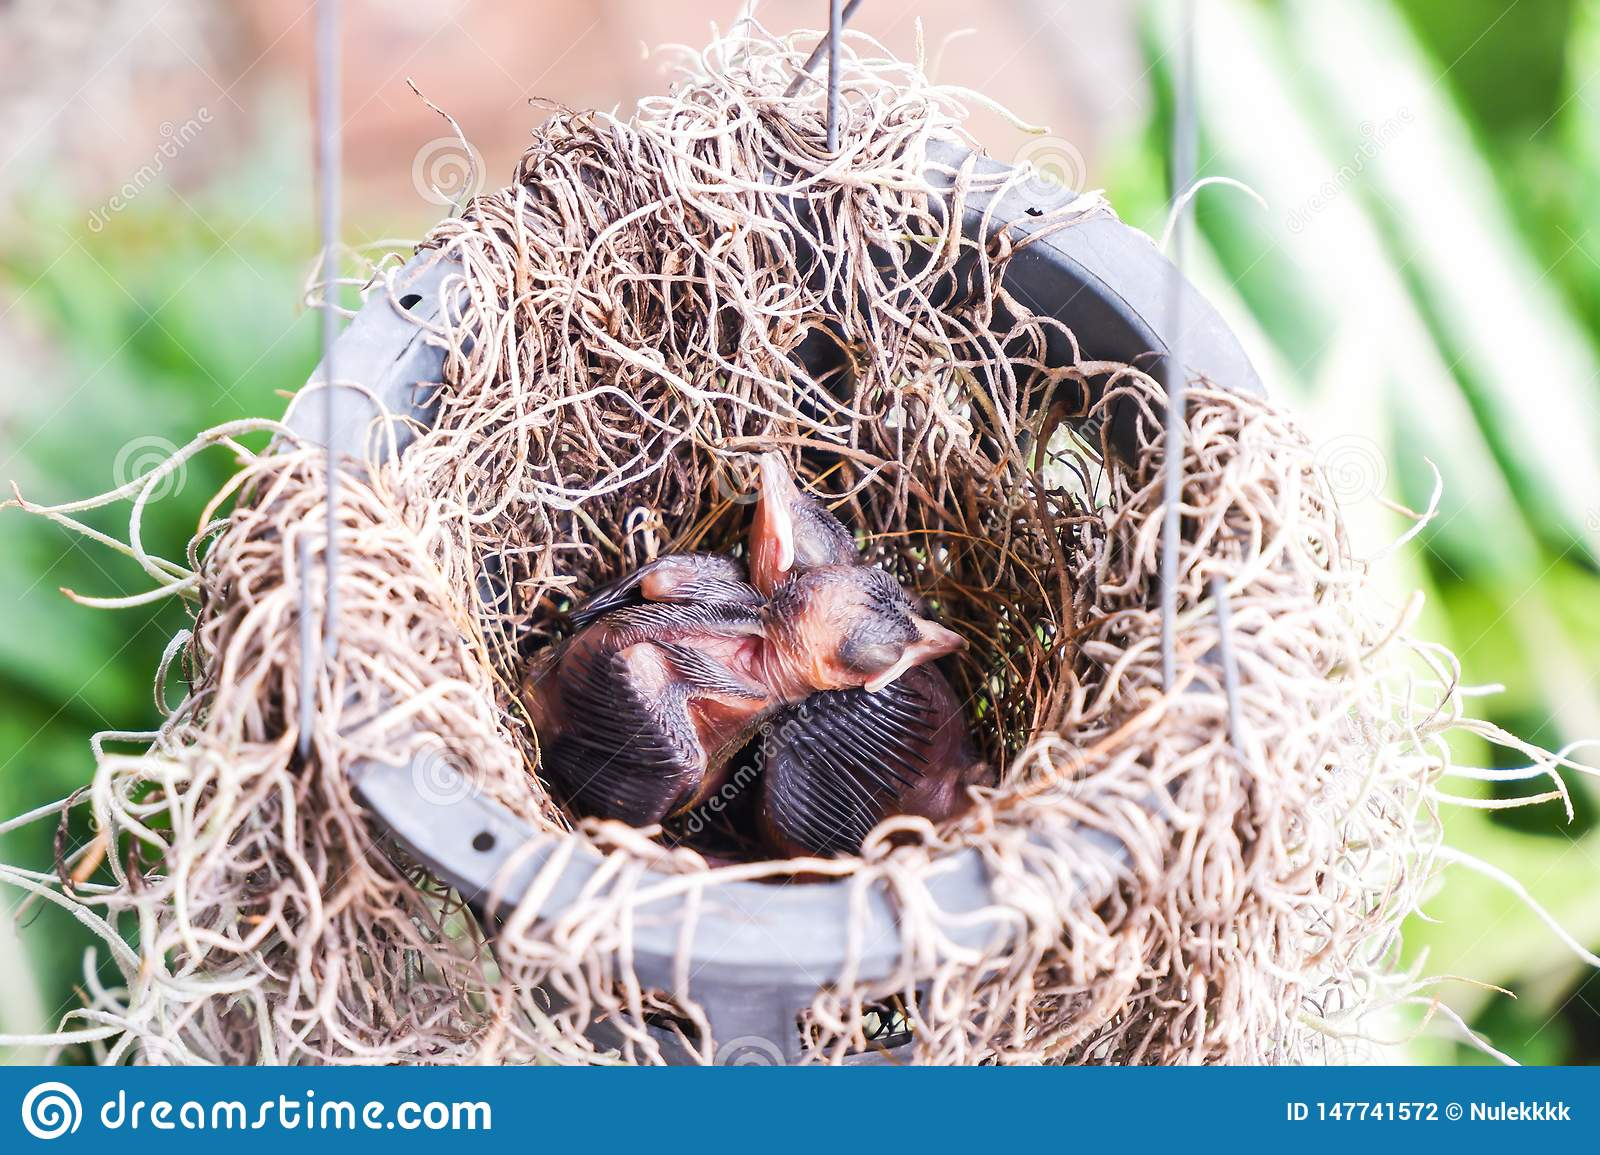 Baby birds in a plant pot